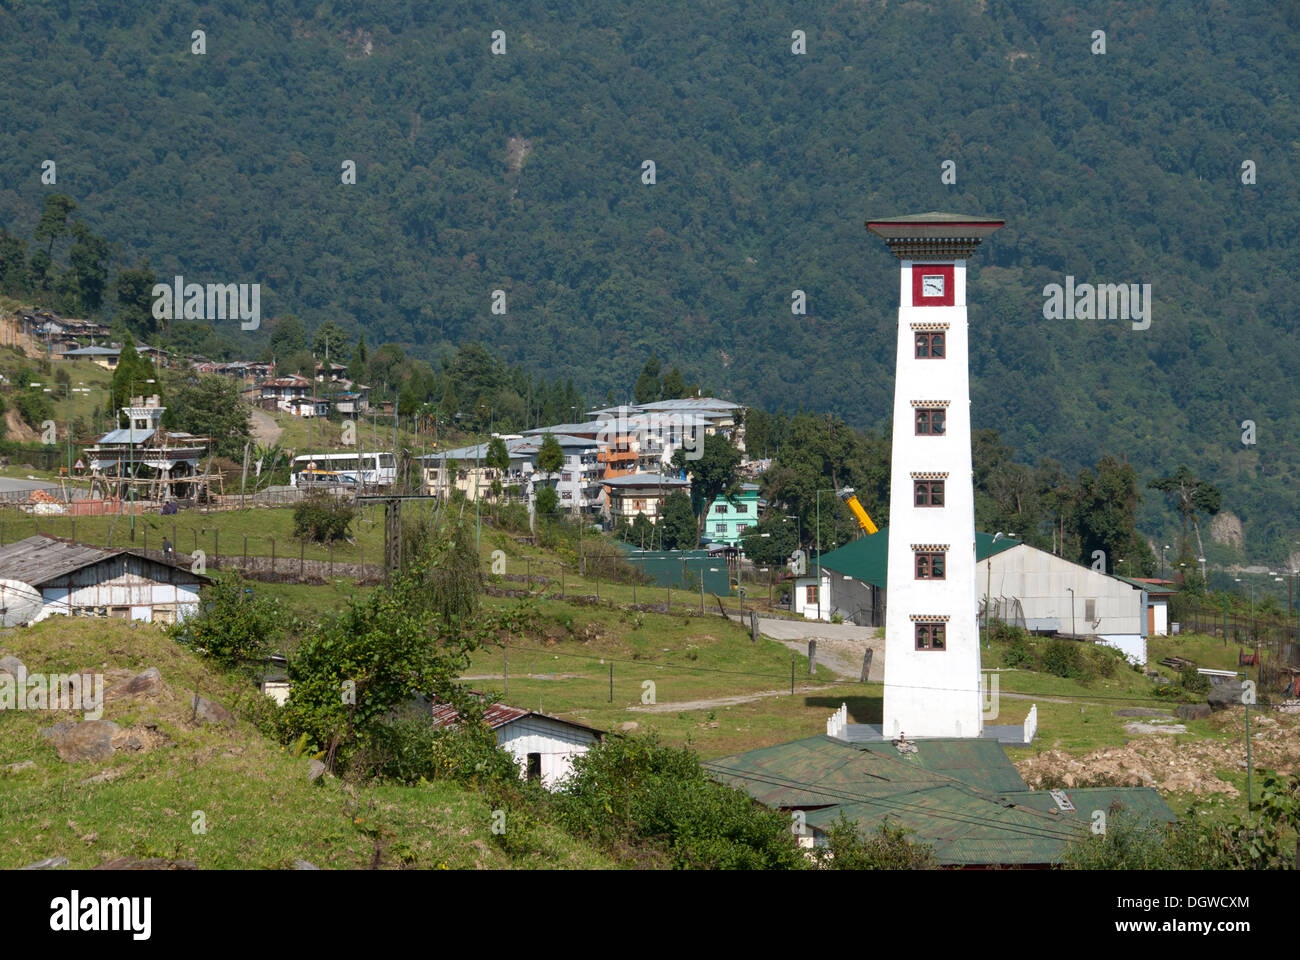 Gedhu village with a tower, Kingdom of Bhutan, South Asia, Asia - Stock Image